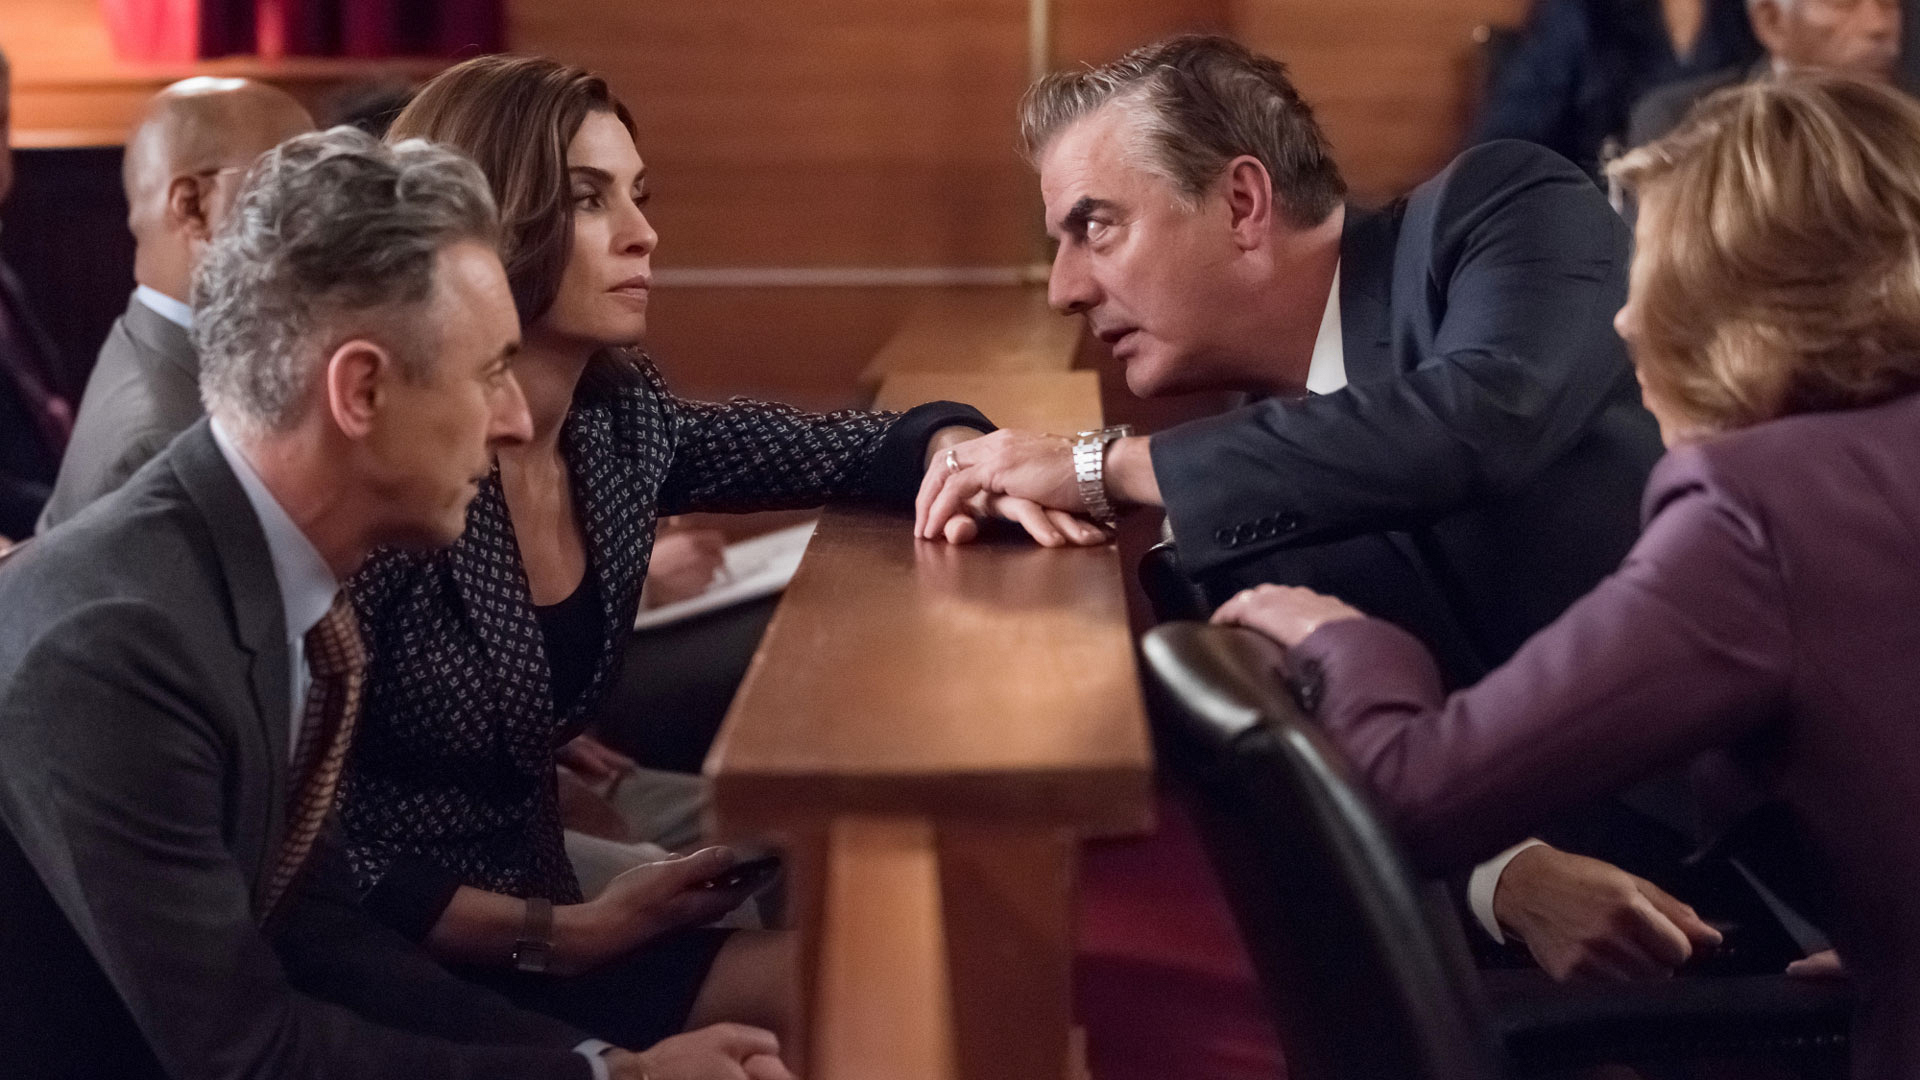 Peter grasps Alicia's hand in the courtroom.